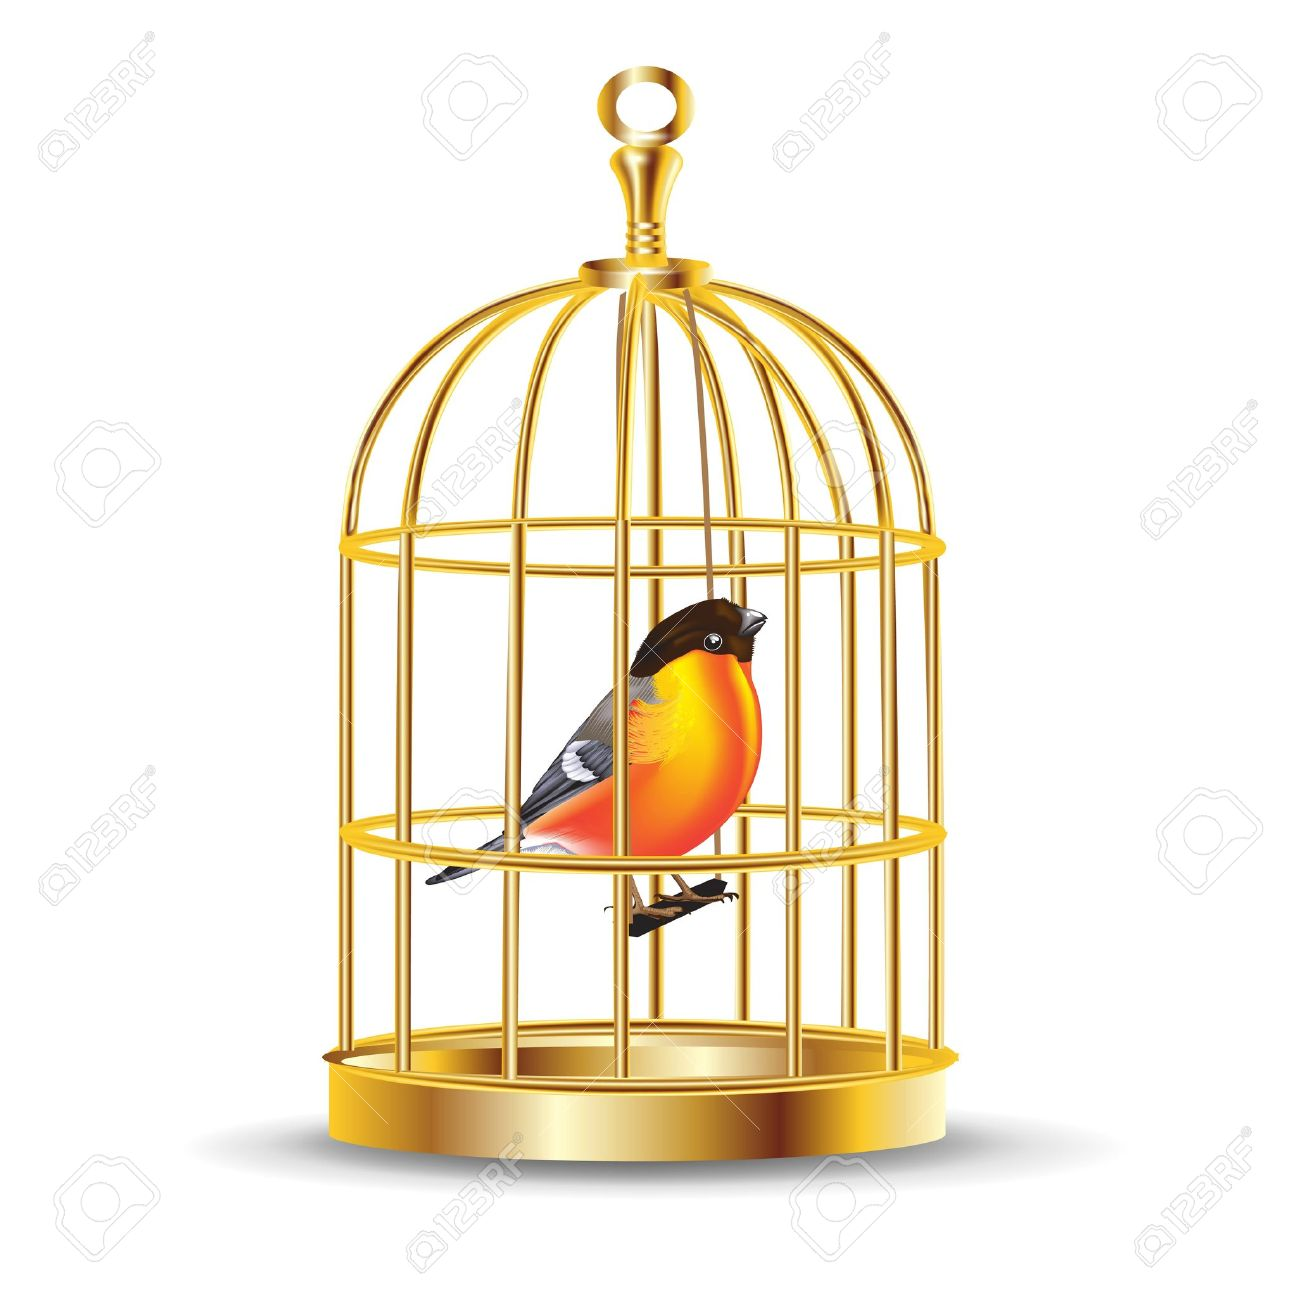 Parrot clipart cage Clipart clipart bird collection Caged